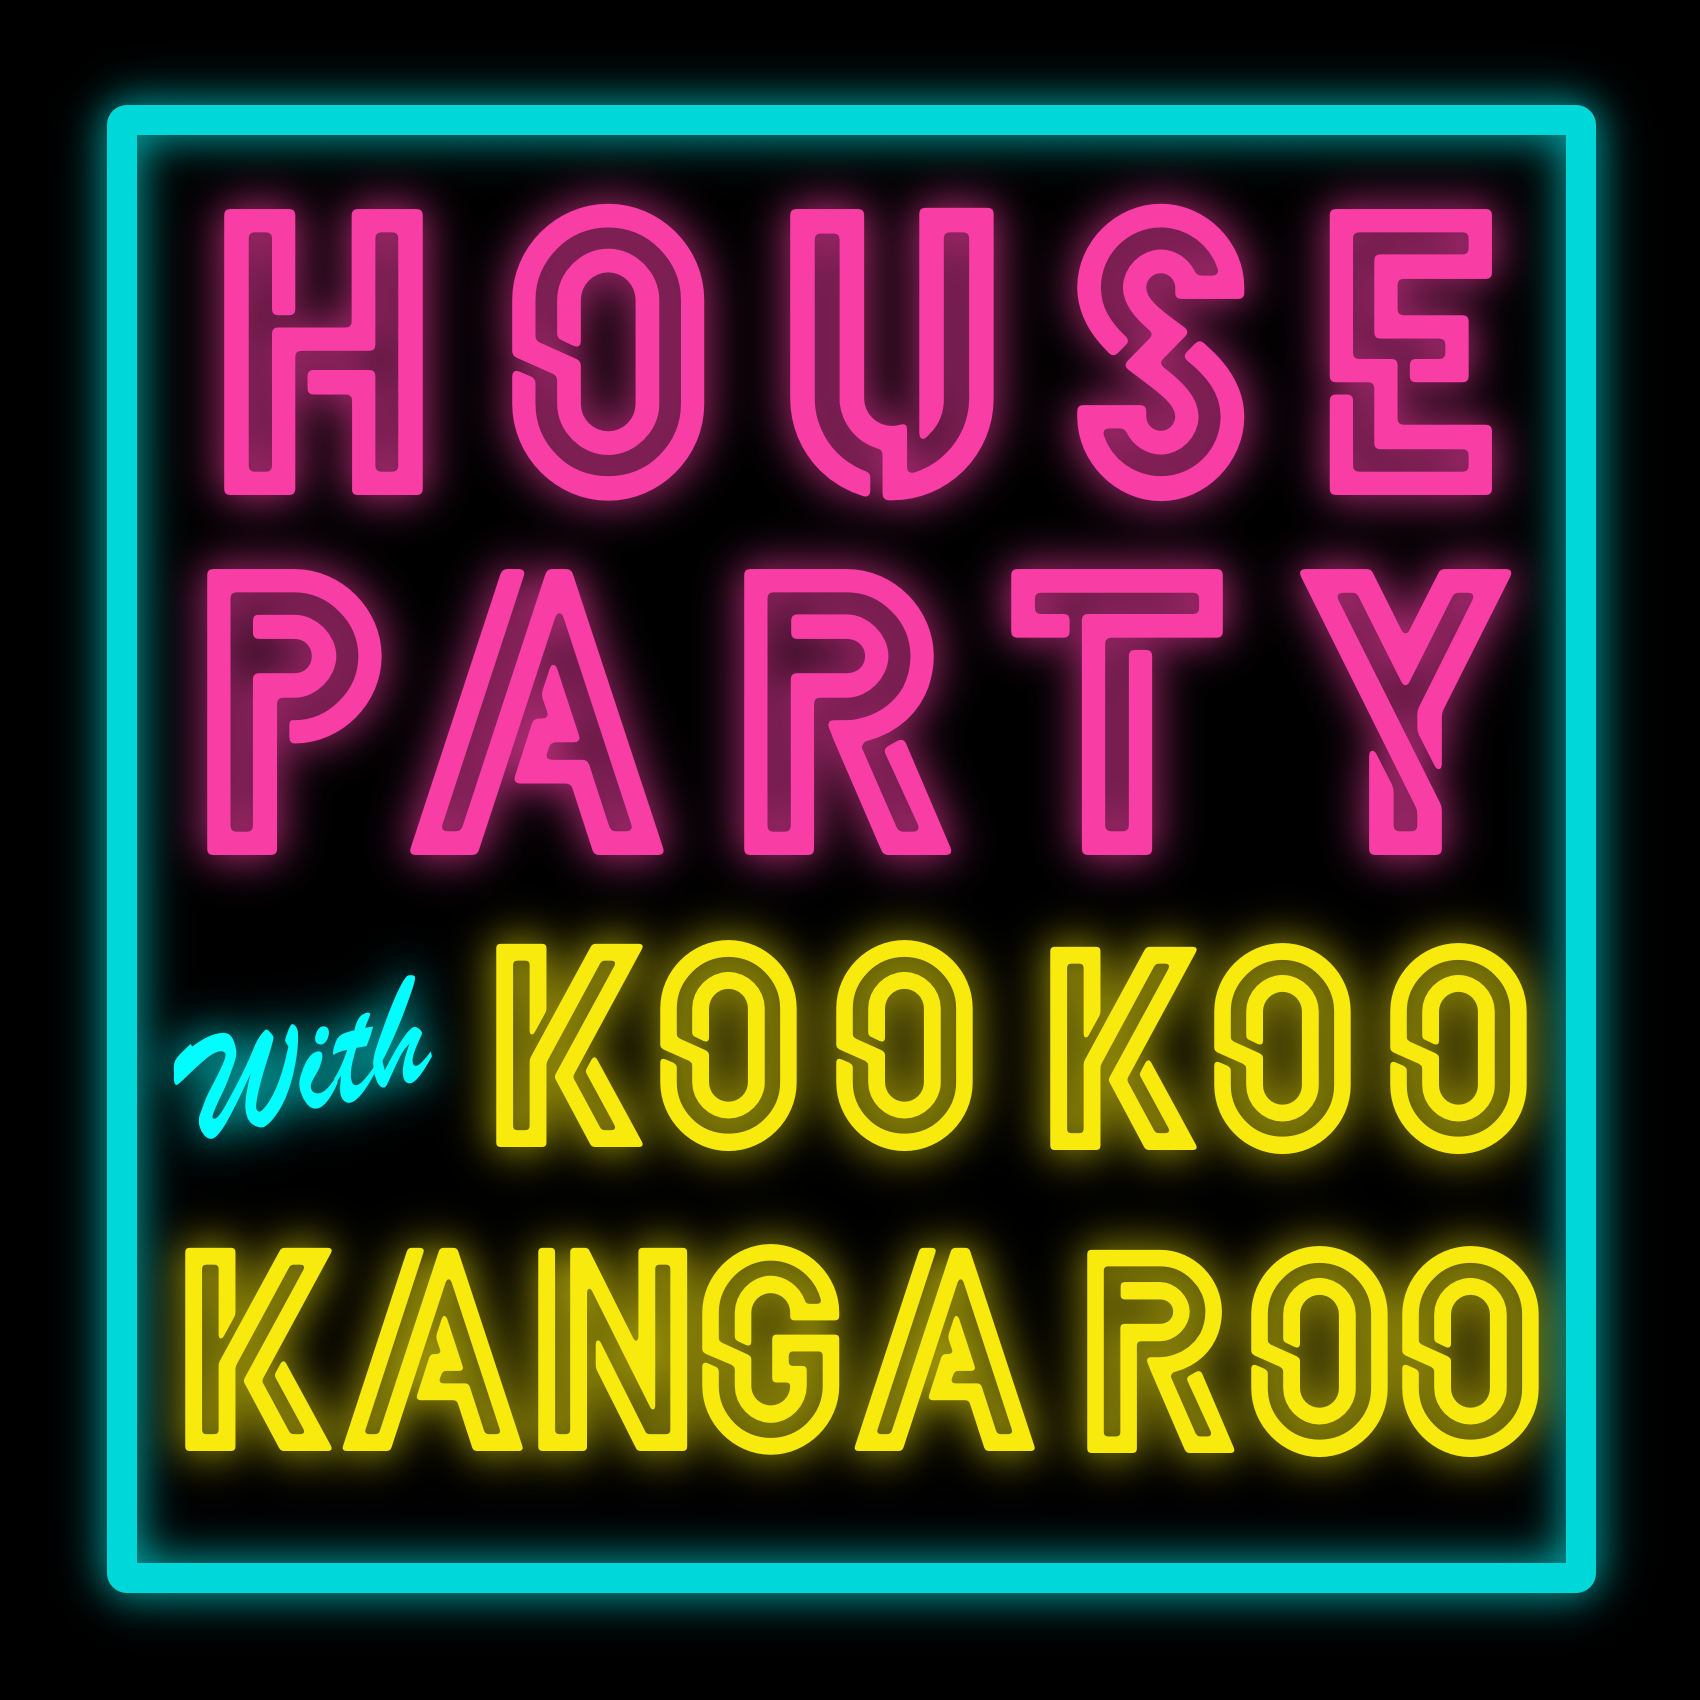 We are proud to announce our NEW dance a long workout video called HOUSE PARTY! It comes out Dec 12th on DVD and digital formats.    17 super rad vids. Pre-order starts Dec 2nd.    ARE YOU READY FOR HOUSE PARRRRRRRRRRRTY?    More deets soon.